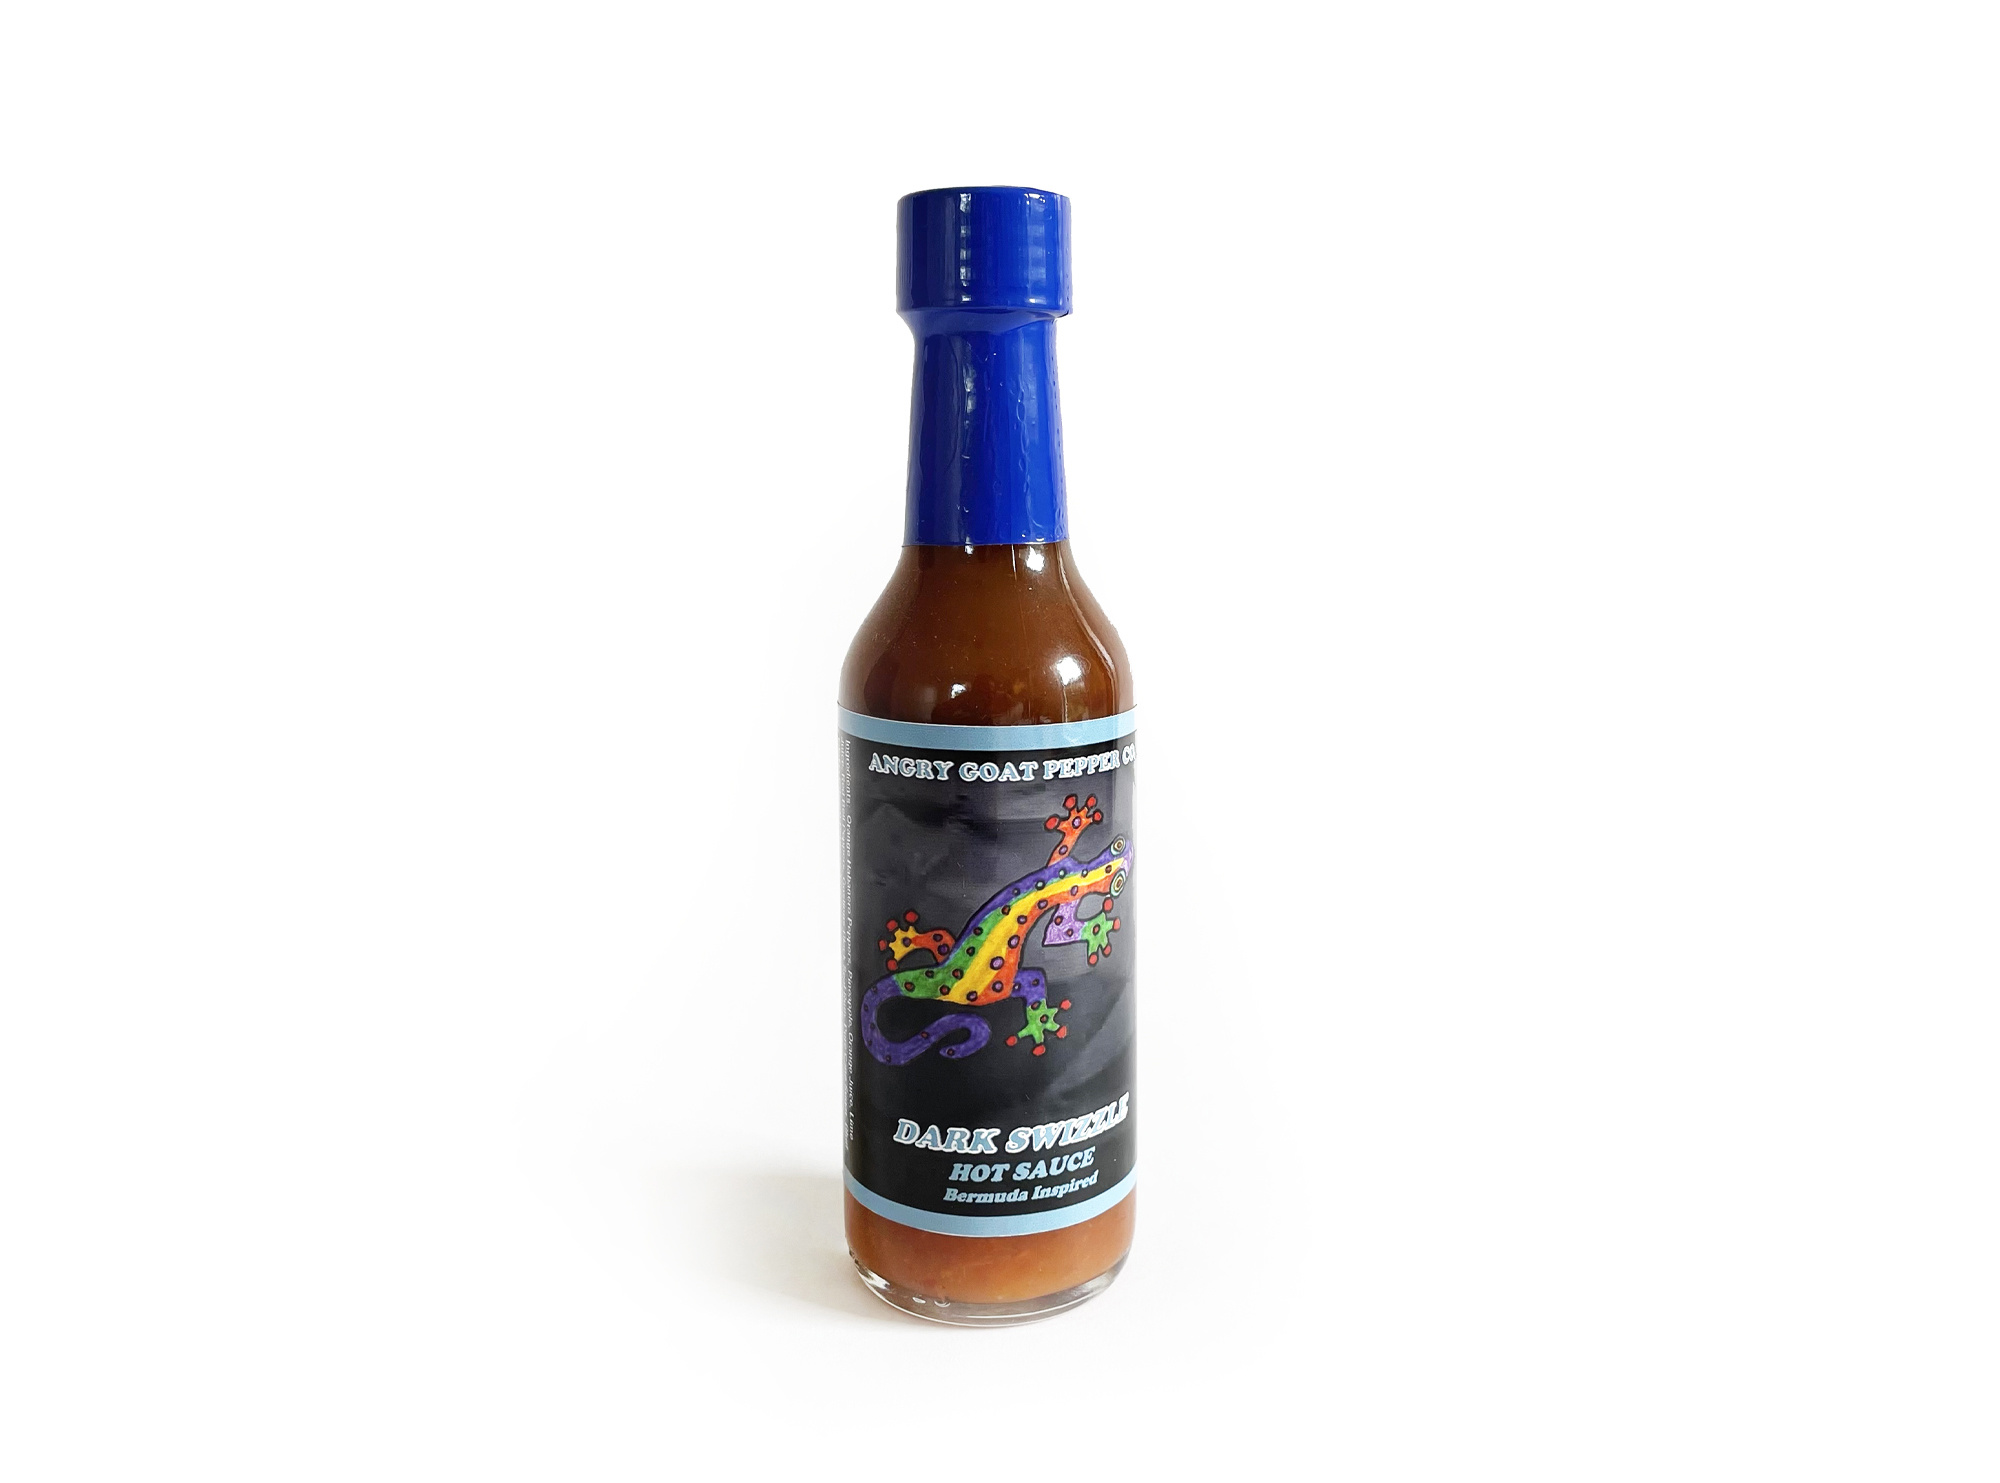 Angry Goat Pepper Co. Dark Swizzle Hot Sauce-1